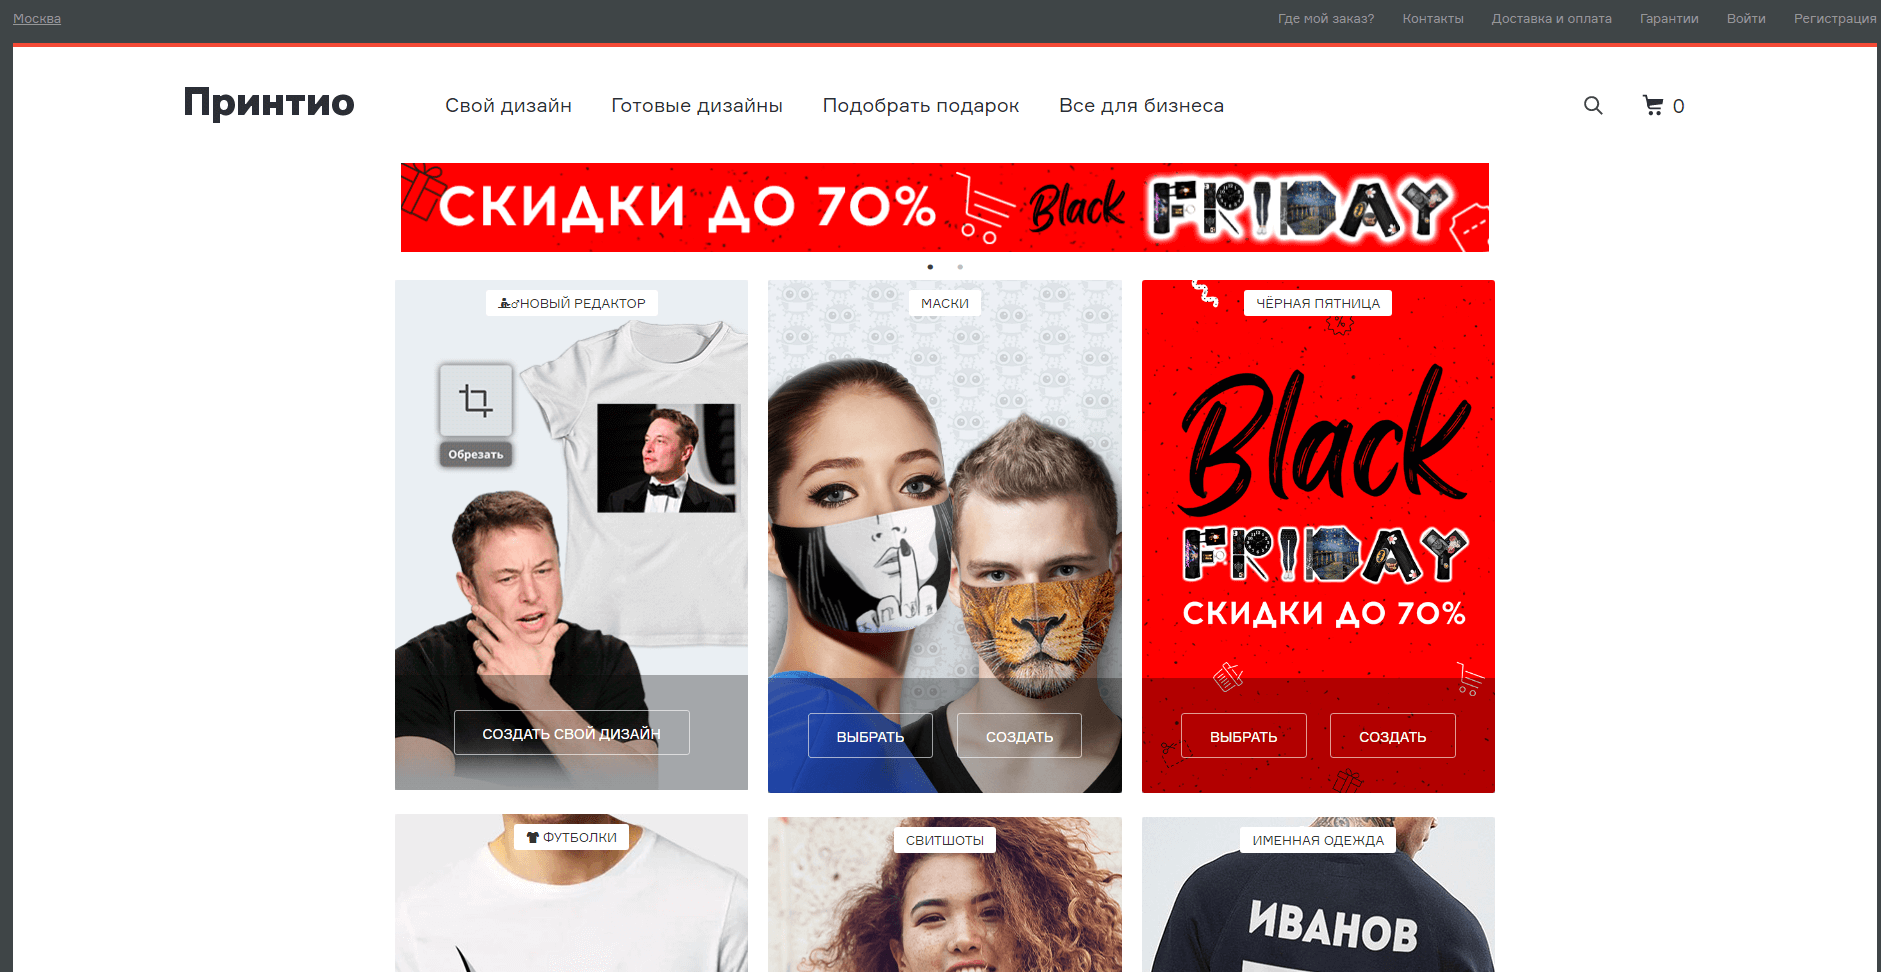 printio.ru website